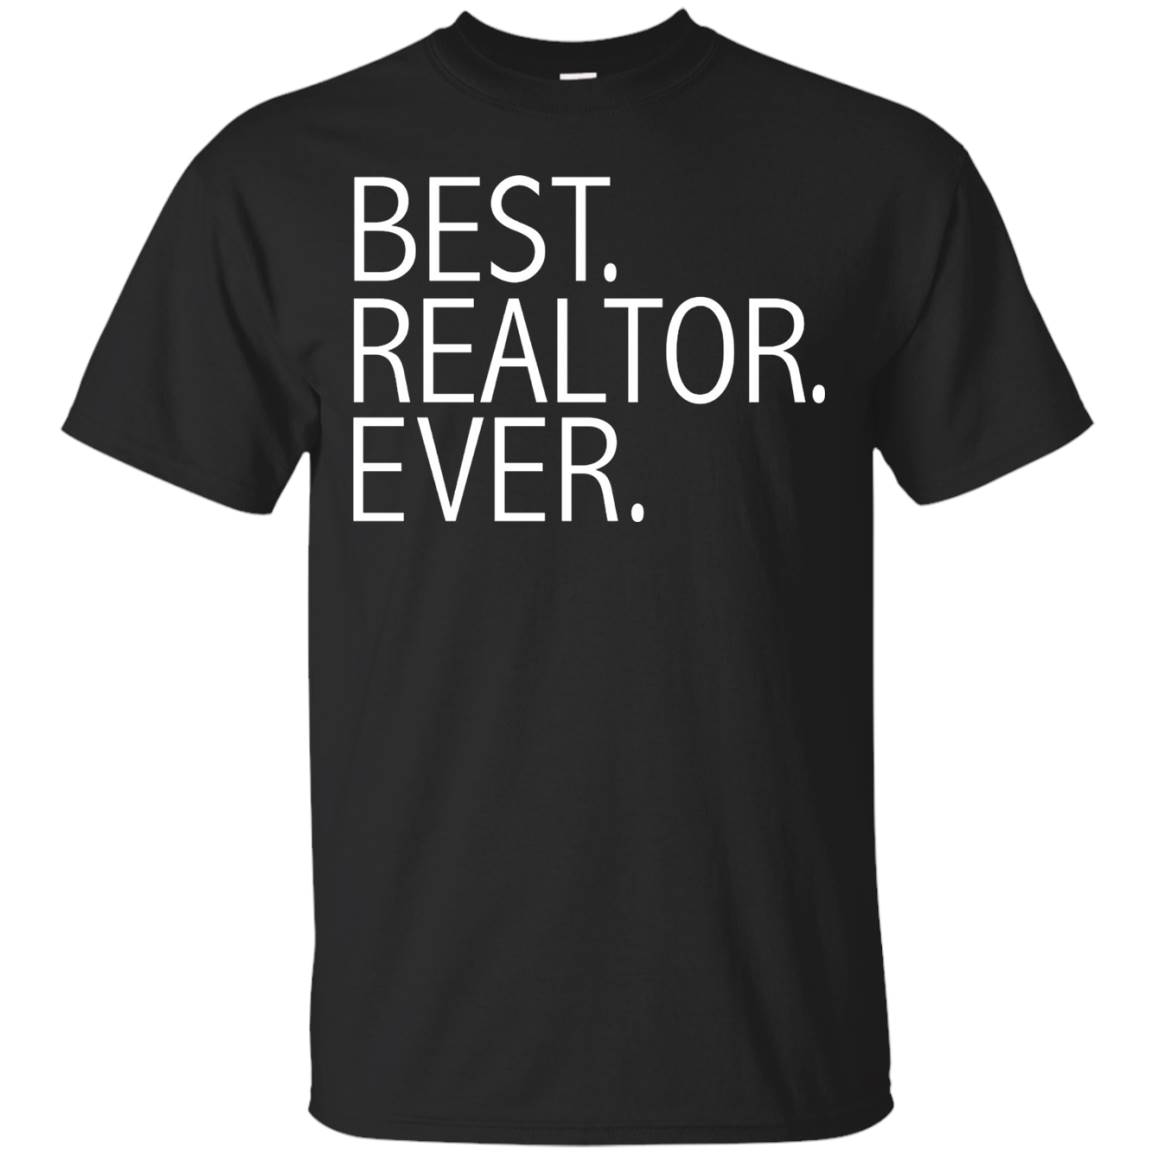 Best Realtor Ever Funny T-shirt Real Estate Agent License